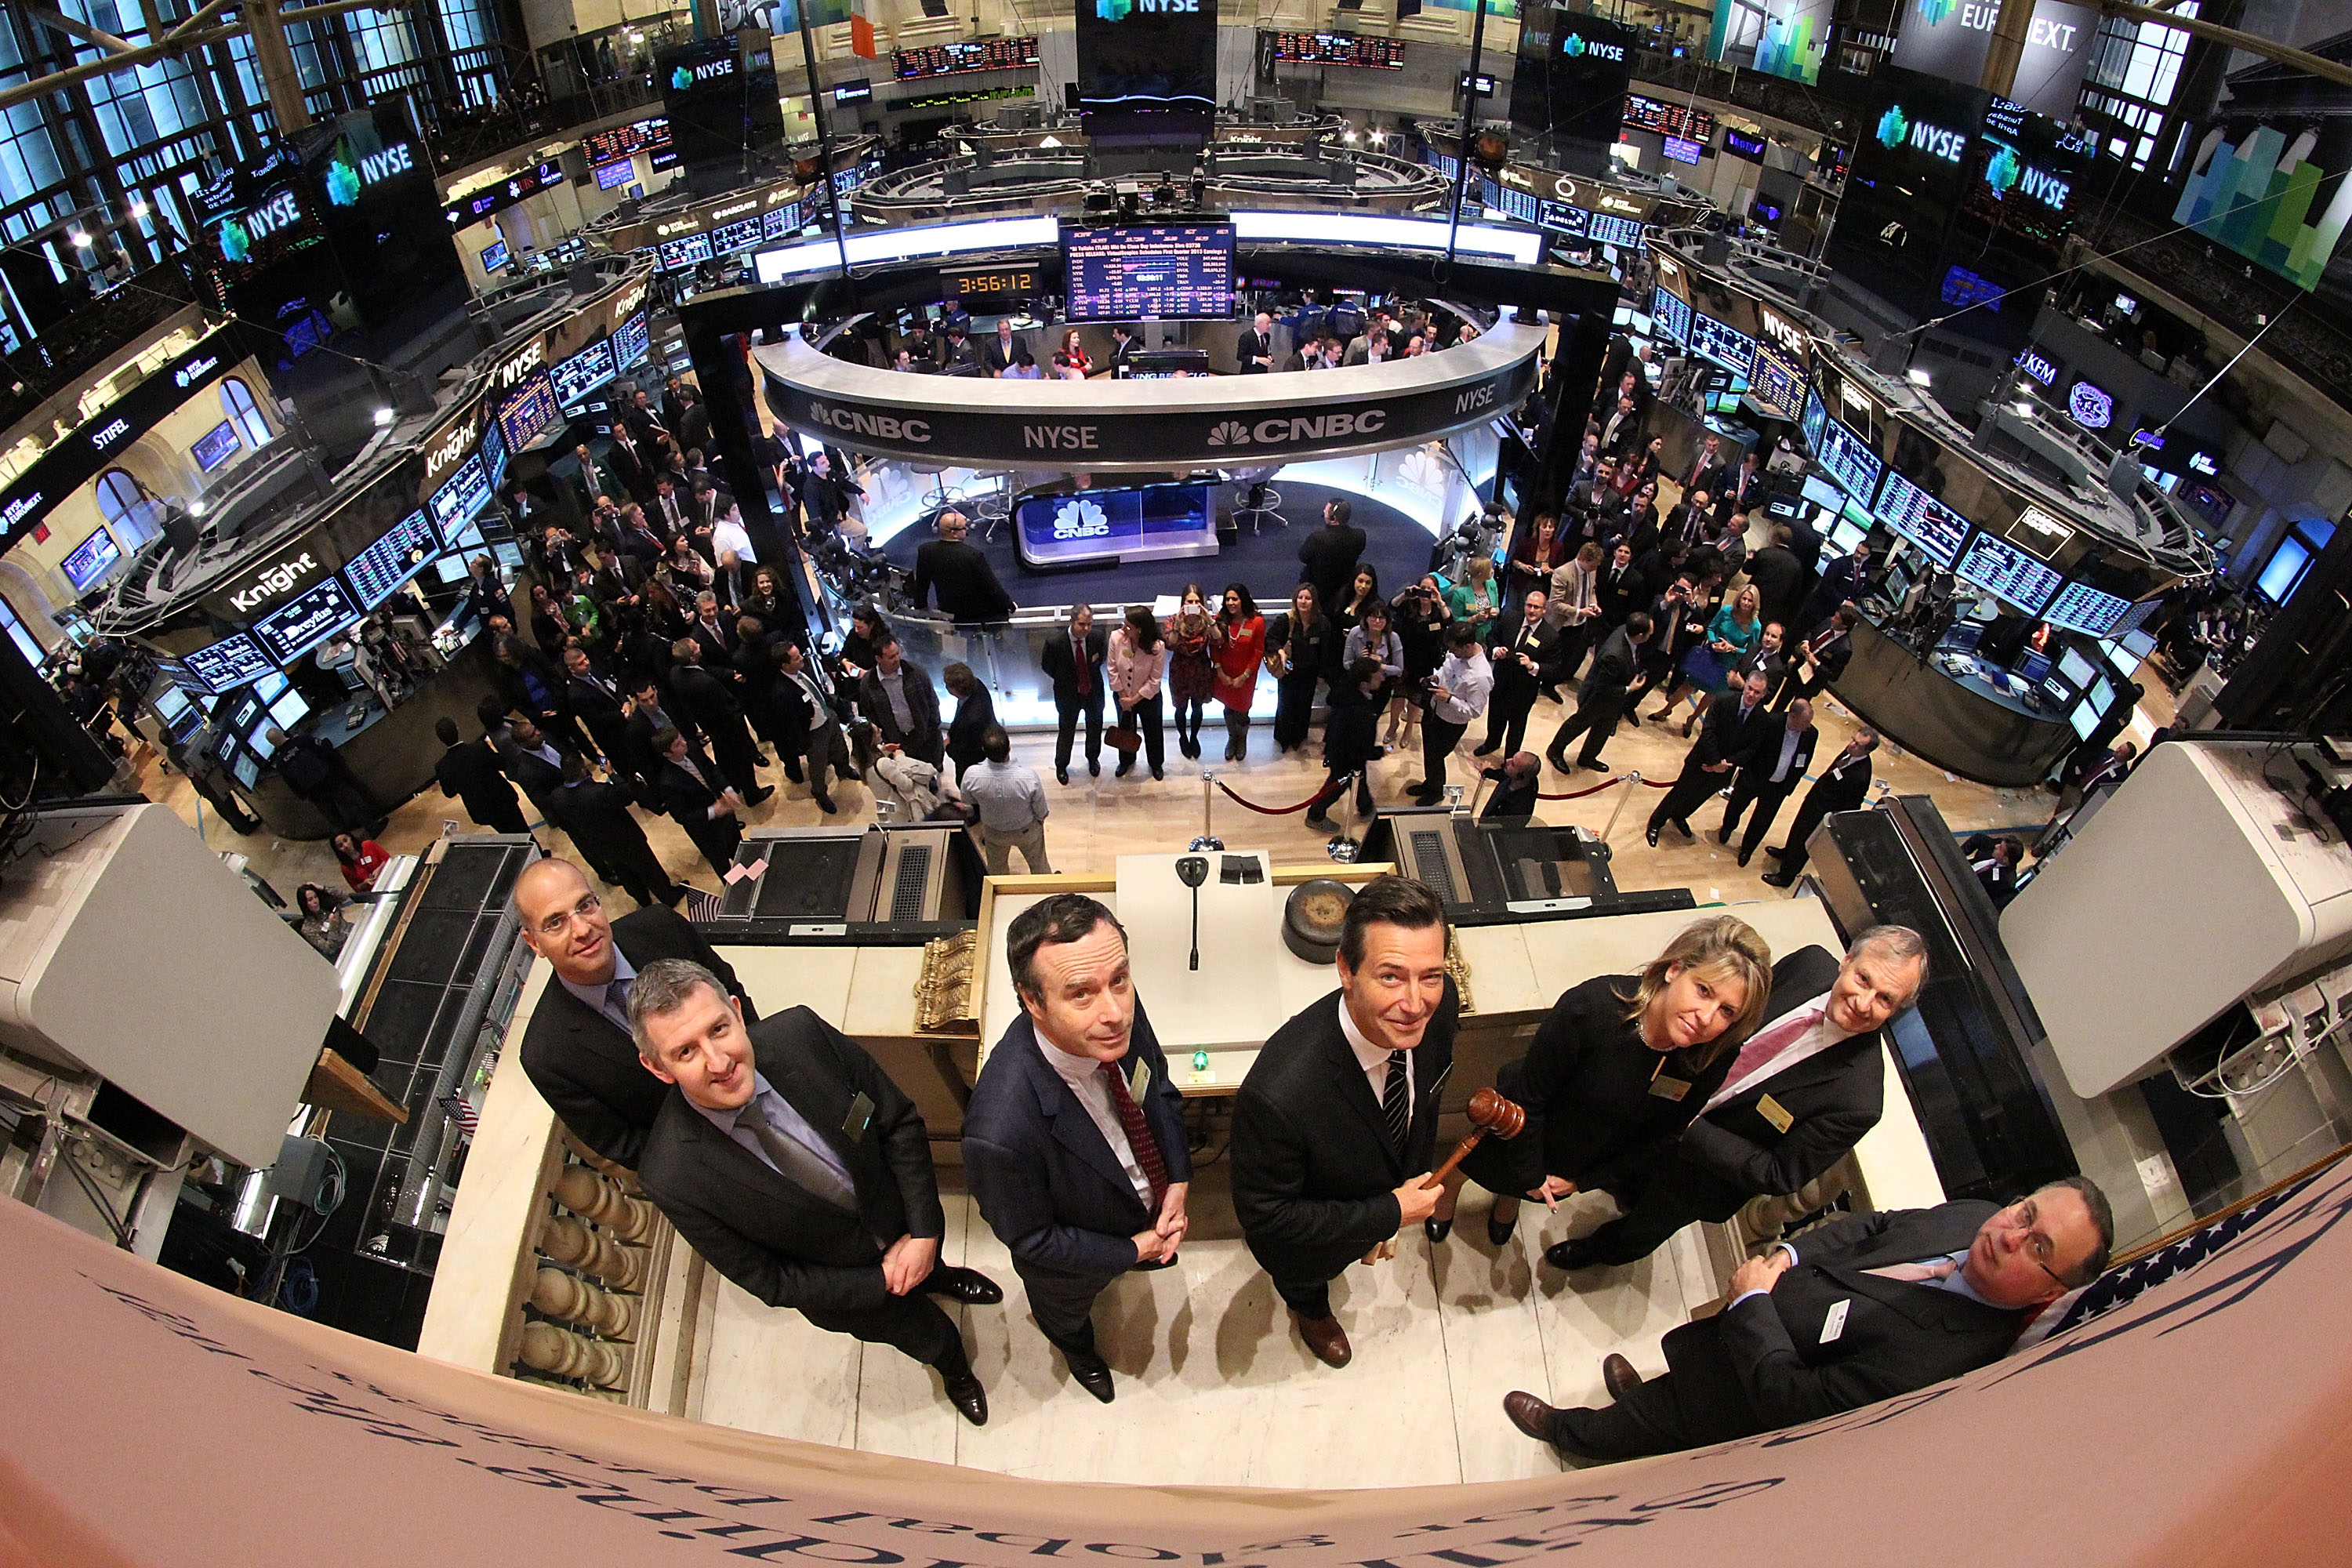 https://upload.wikimedia.org/wikipedia/commons/e/ed/FT_ringing_the_Closing_Bell_at_the_NYSE_%288740579005%29.jpg